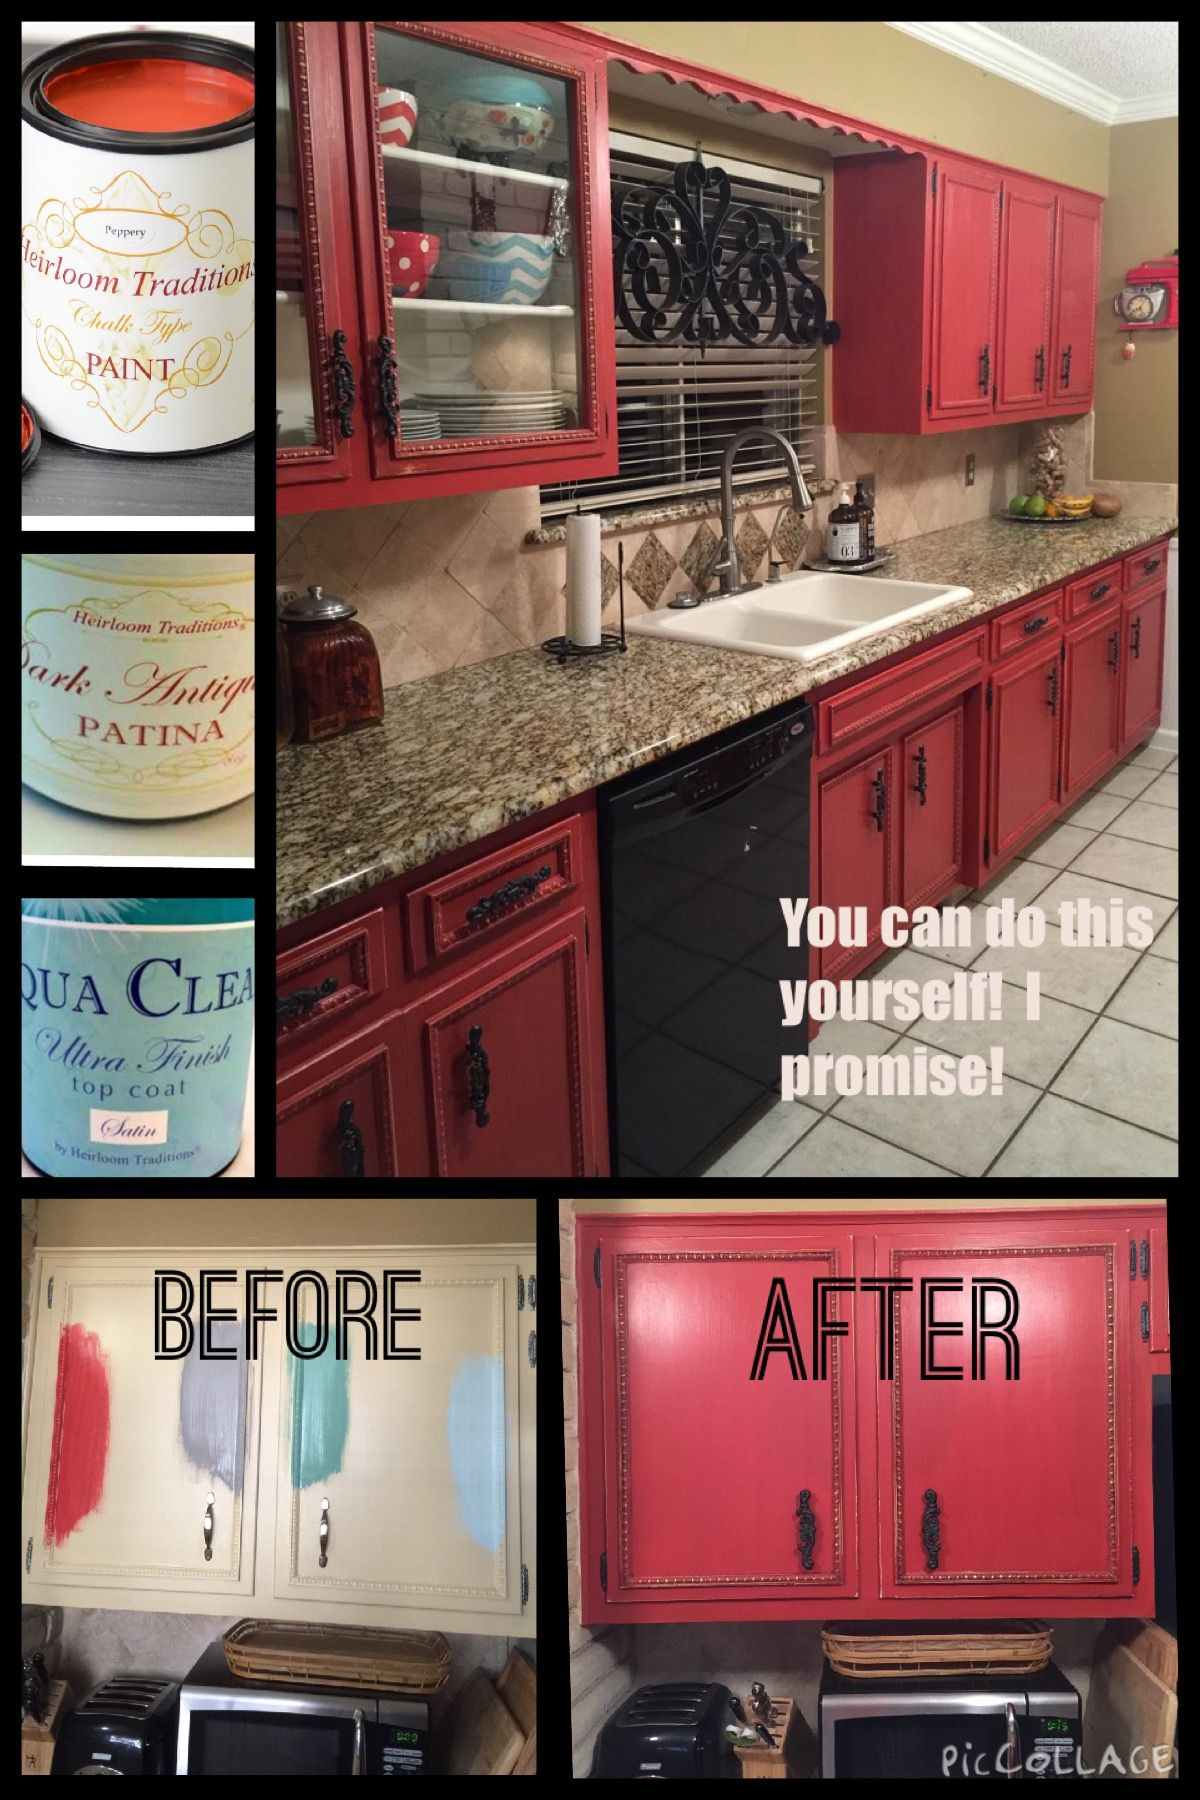 Diy Red Painted Kitchen Cabinets By Tracey S Fancy It Easy To Give Your A Makeover With Using Heirloom Traditions Chalk Type